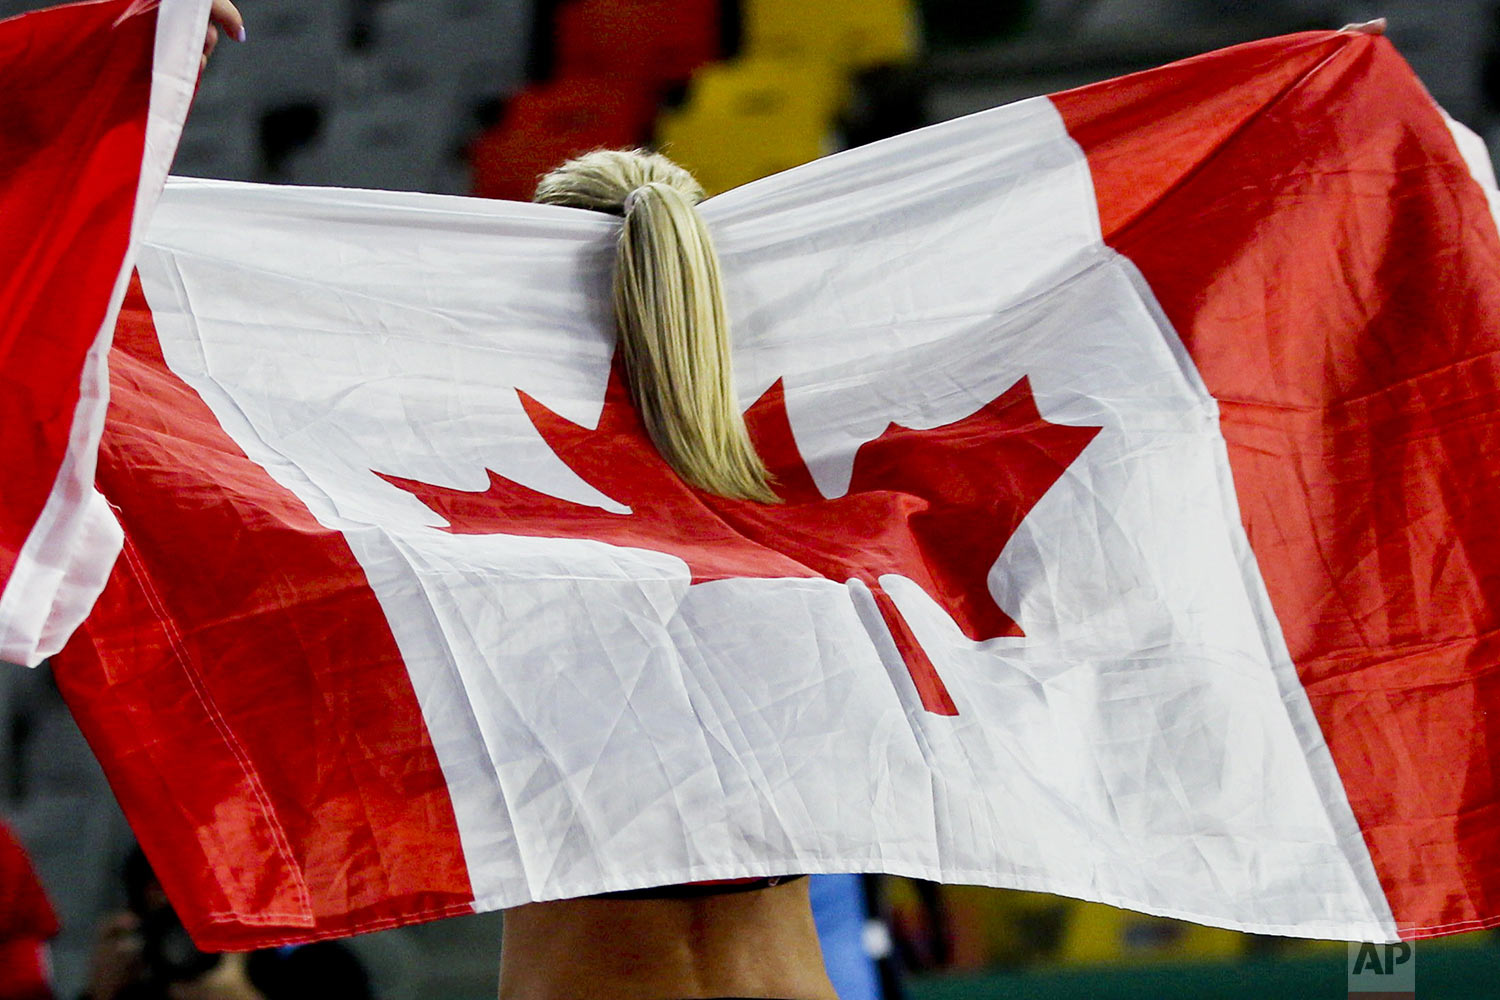 Natasha Wodak of Canada celebrates winning the gold medal in the women's 10000m final during the athletics at the Pan American Games in Lima, Peru, Tuesday, Aug. 6, 2019. (AP Photo/Martin Mejia)